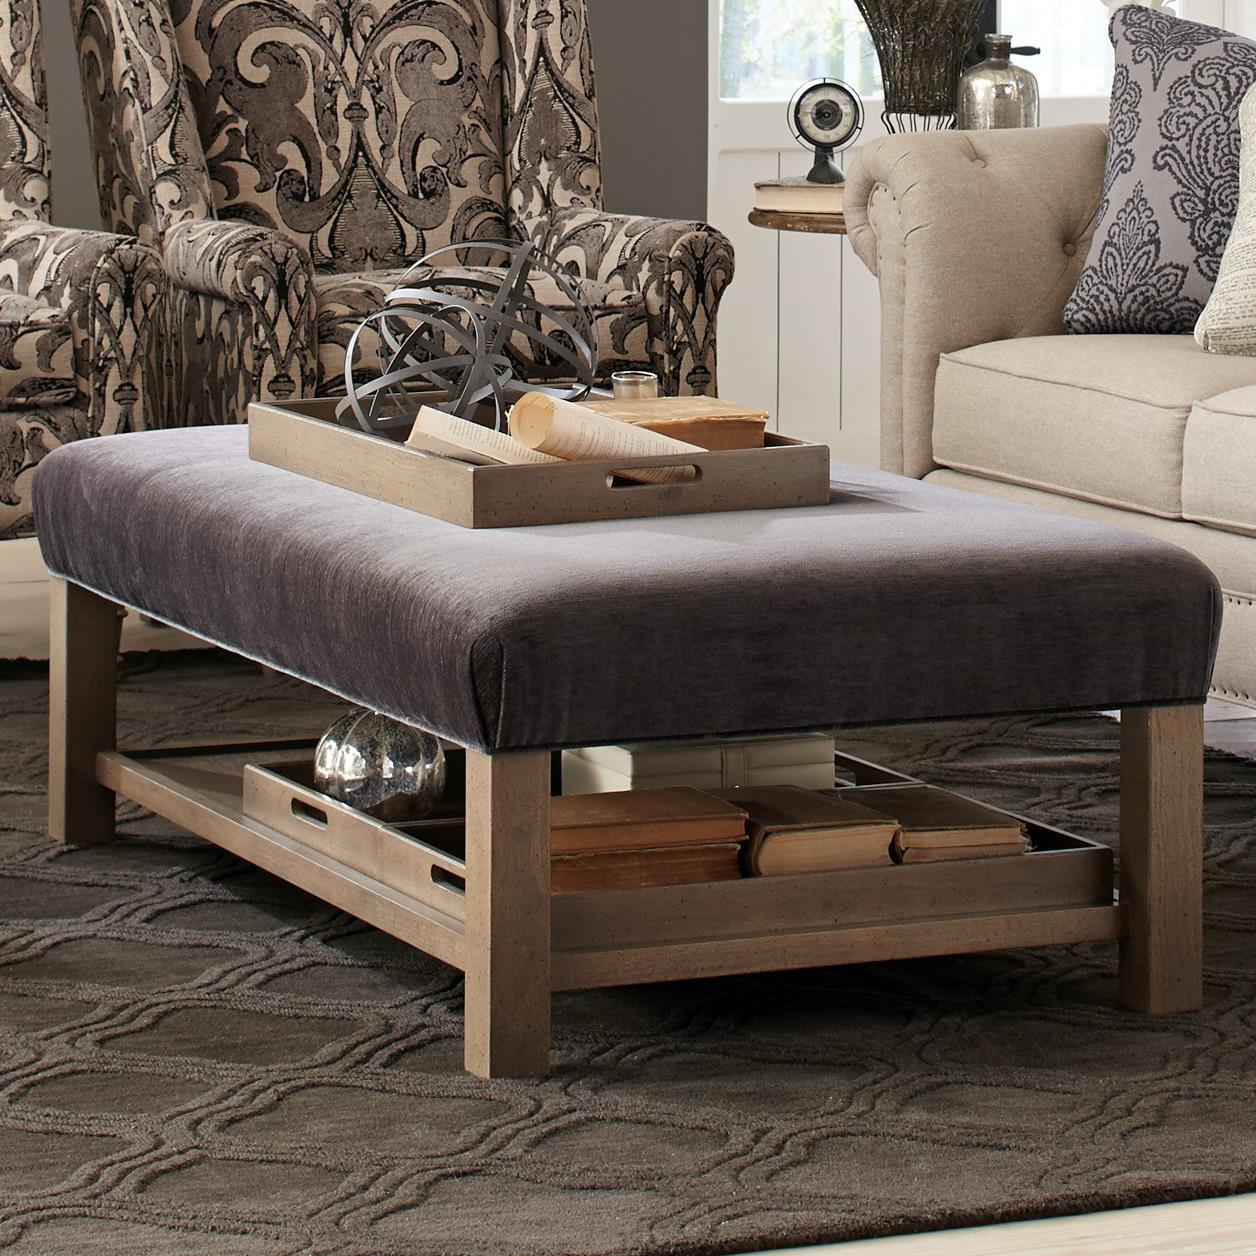 accent ottomans storage bench ottoman with tray storage